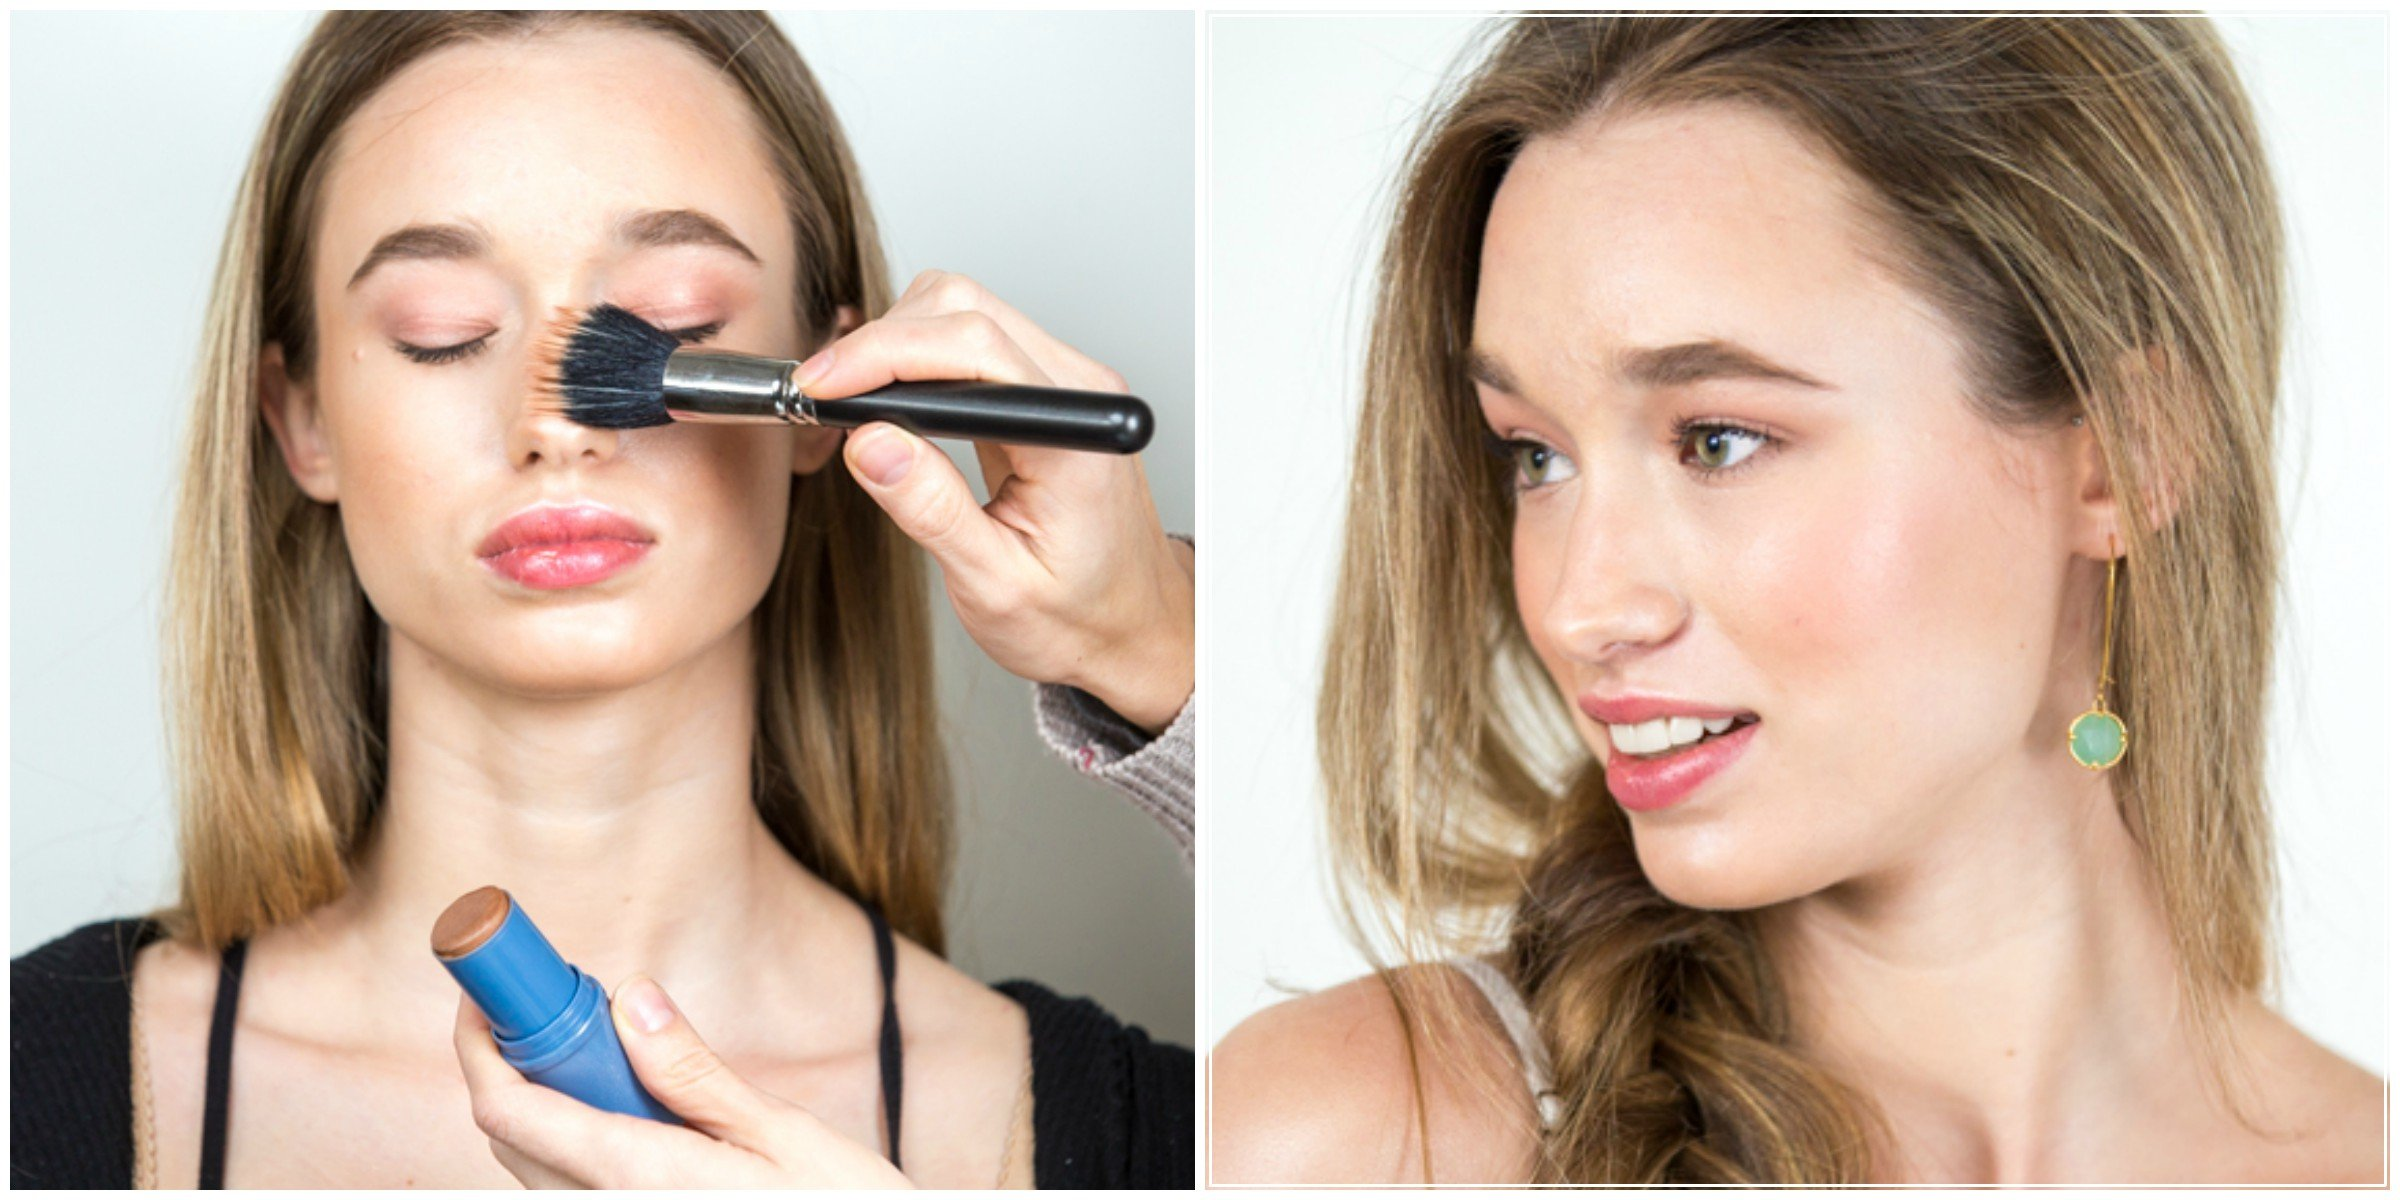 How to apply bronzer for a beach vacation makeup look with coral eyes and lips and glowy bronzed skin created by Ottawa makeup artist Klava Z